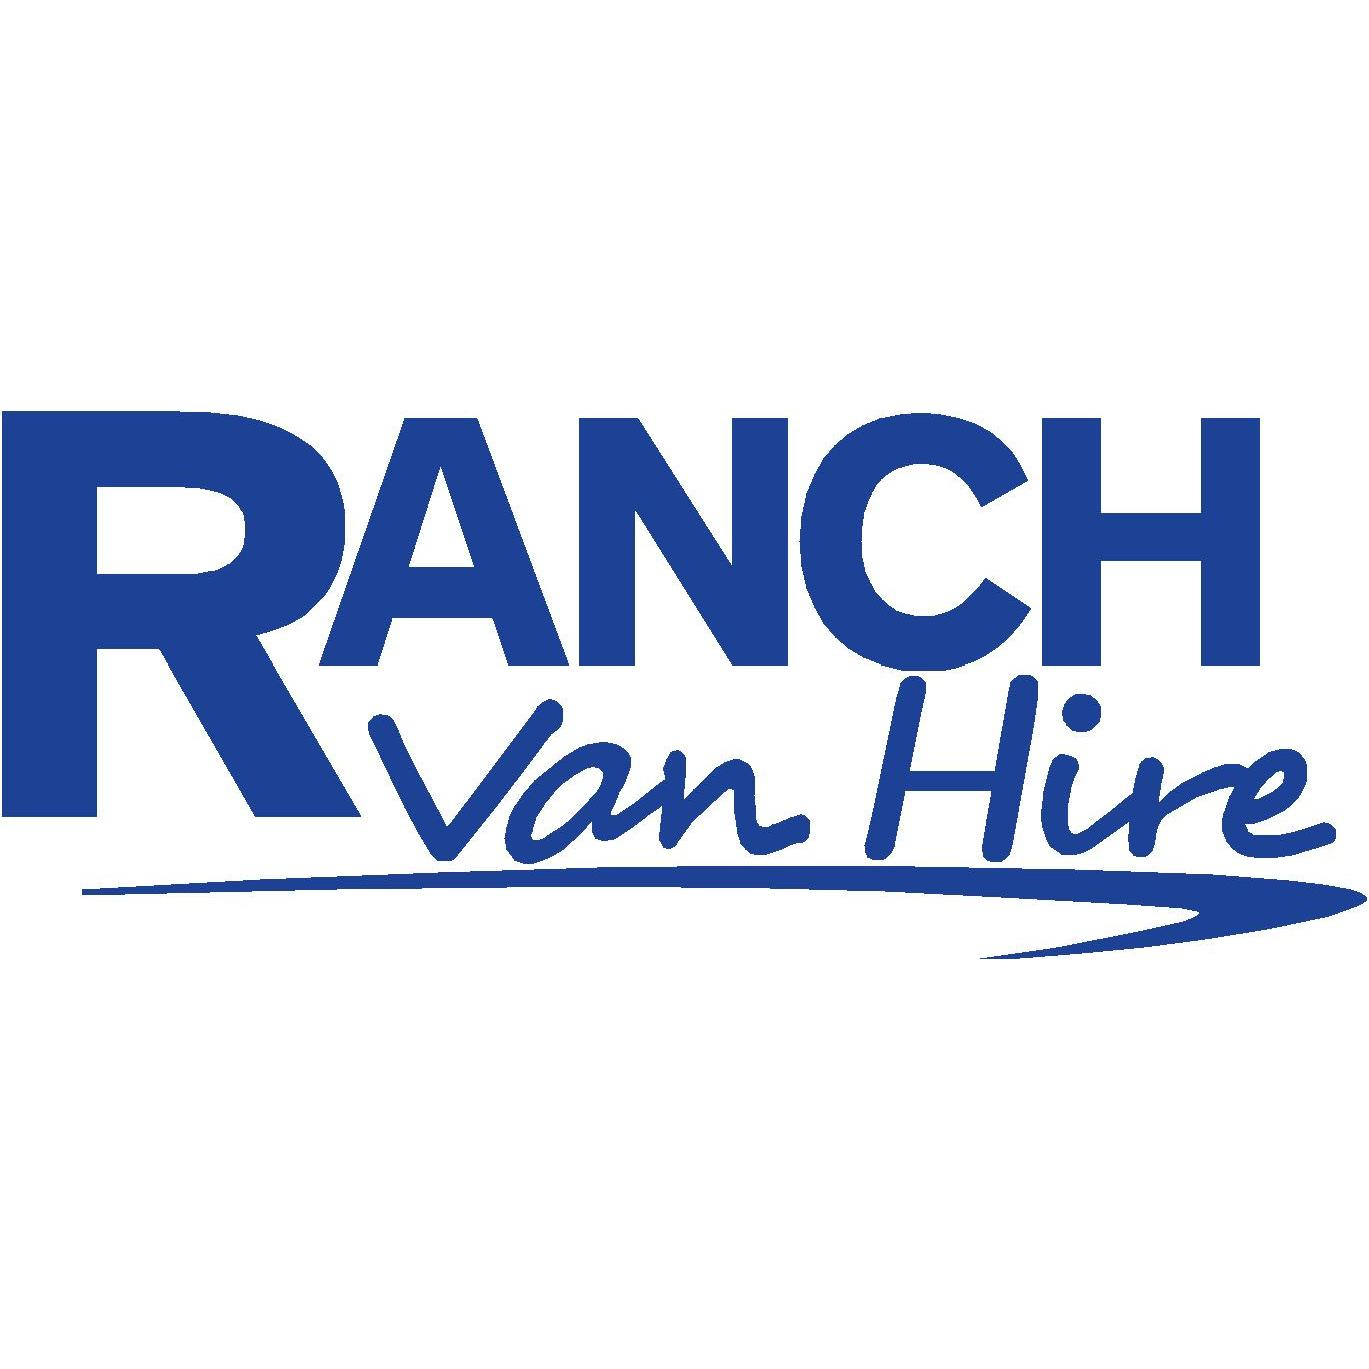 Ranch Van Hire - Nottingham, Nottinghamshire NG13 8GF - 01949 831110 | ShowMeLocal.com